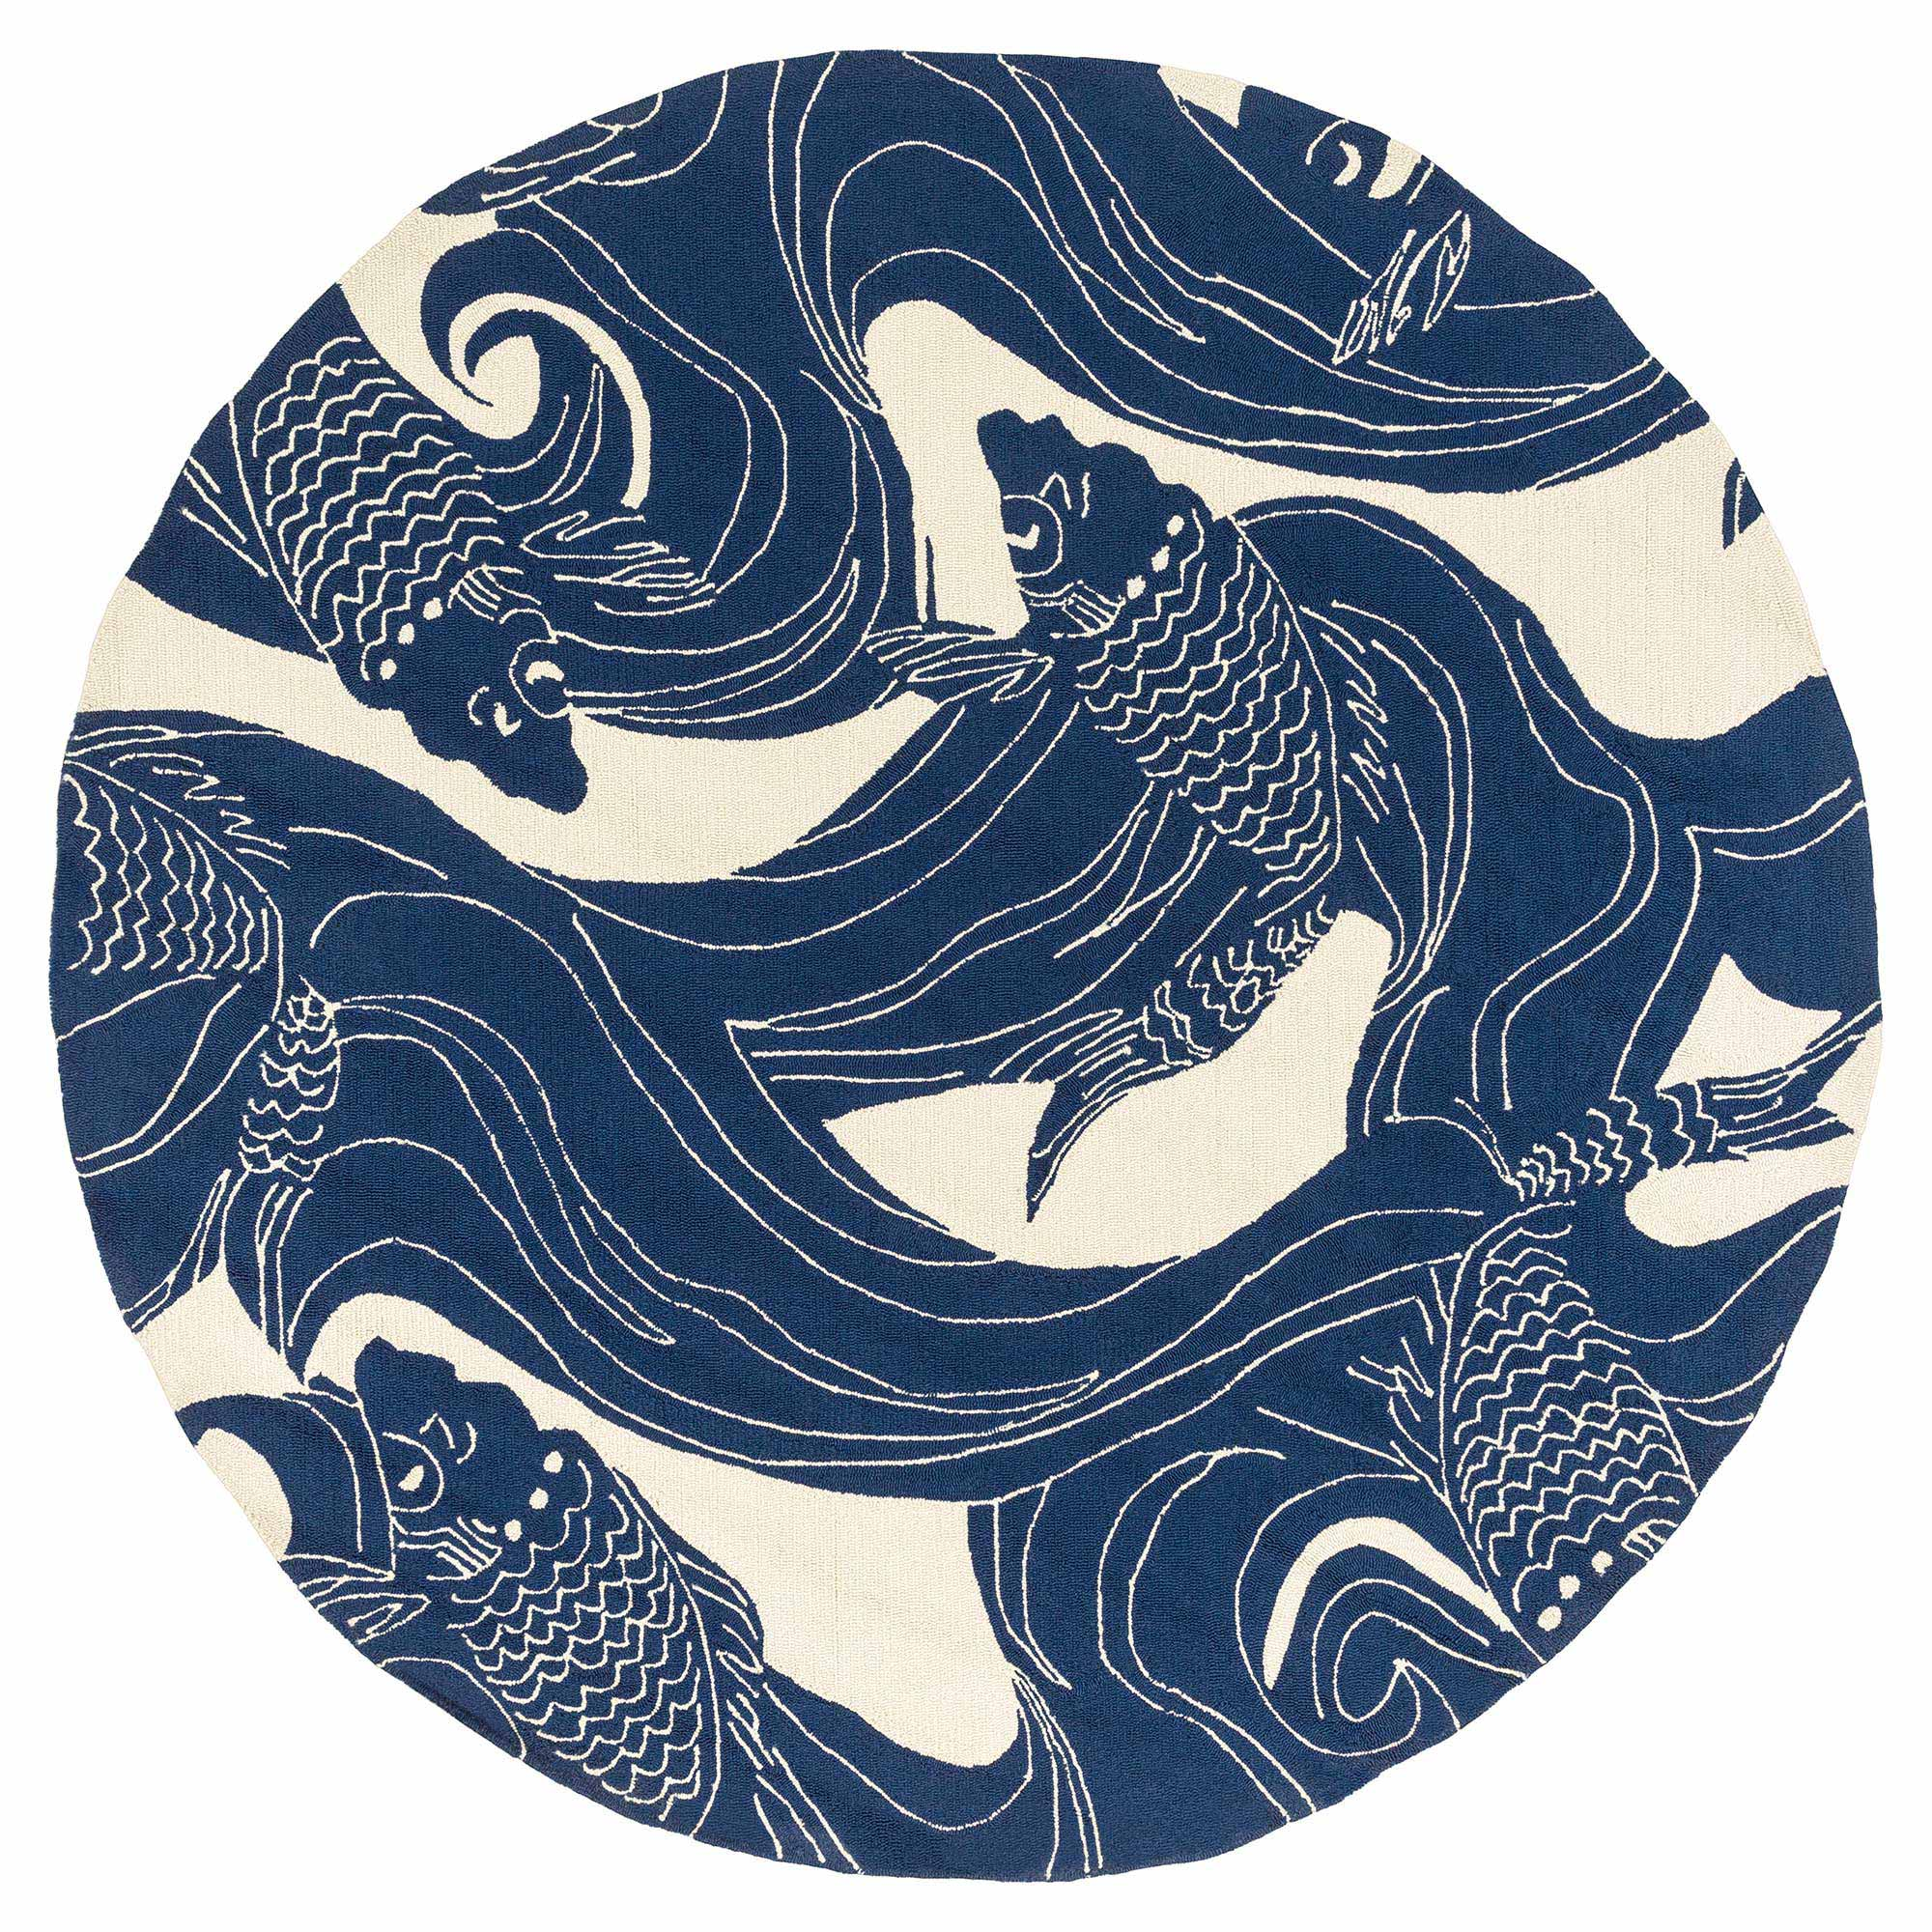 Kana Global Coastal Blue Ocean Koi Outdoor Rug - 8' Round